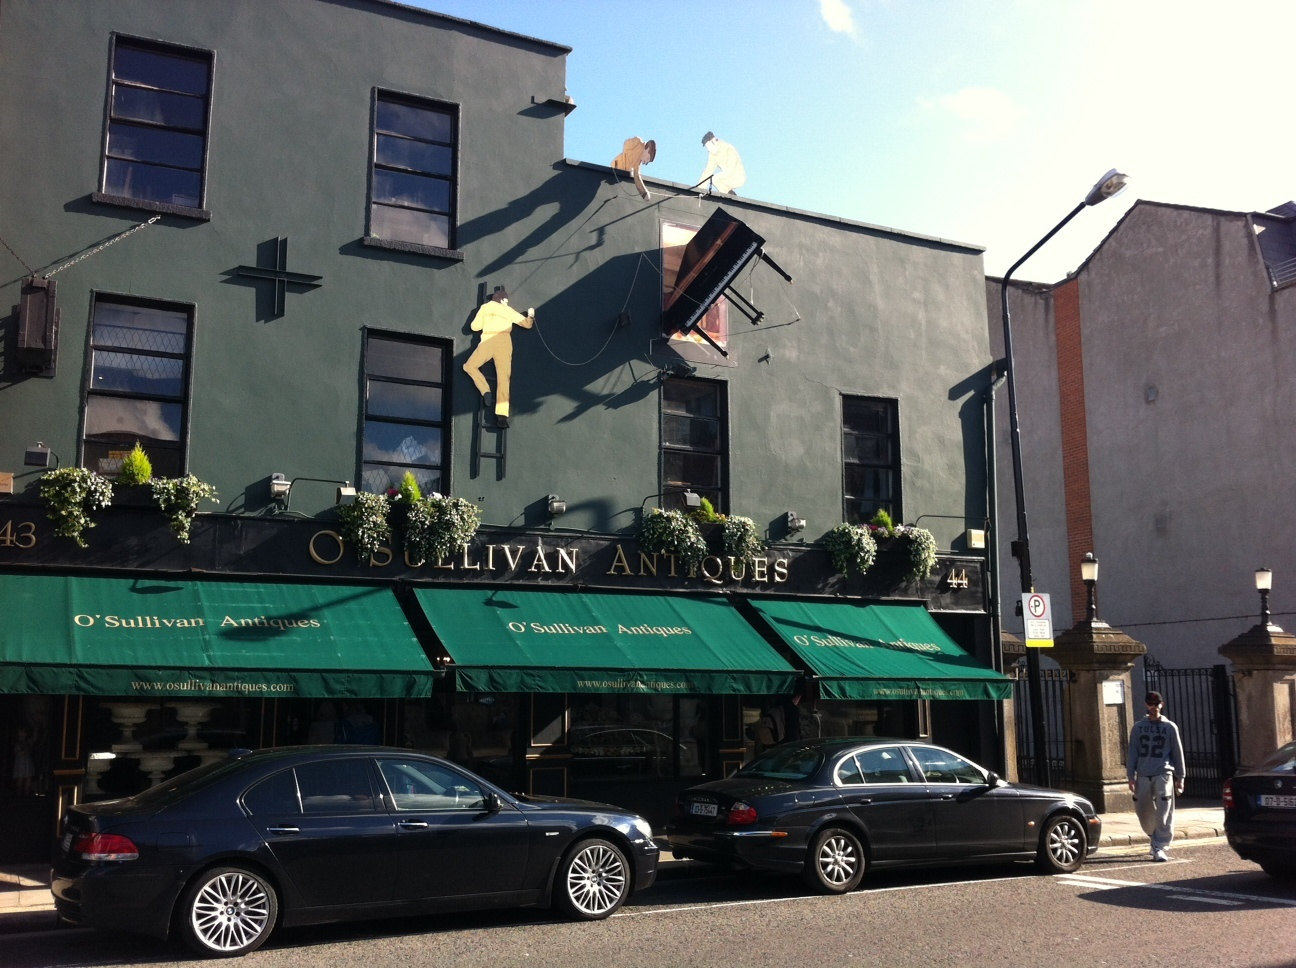 O'Sullivan's Antiques with funky delivery men climbing the wall with the dangling piano.